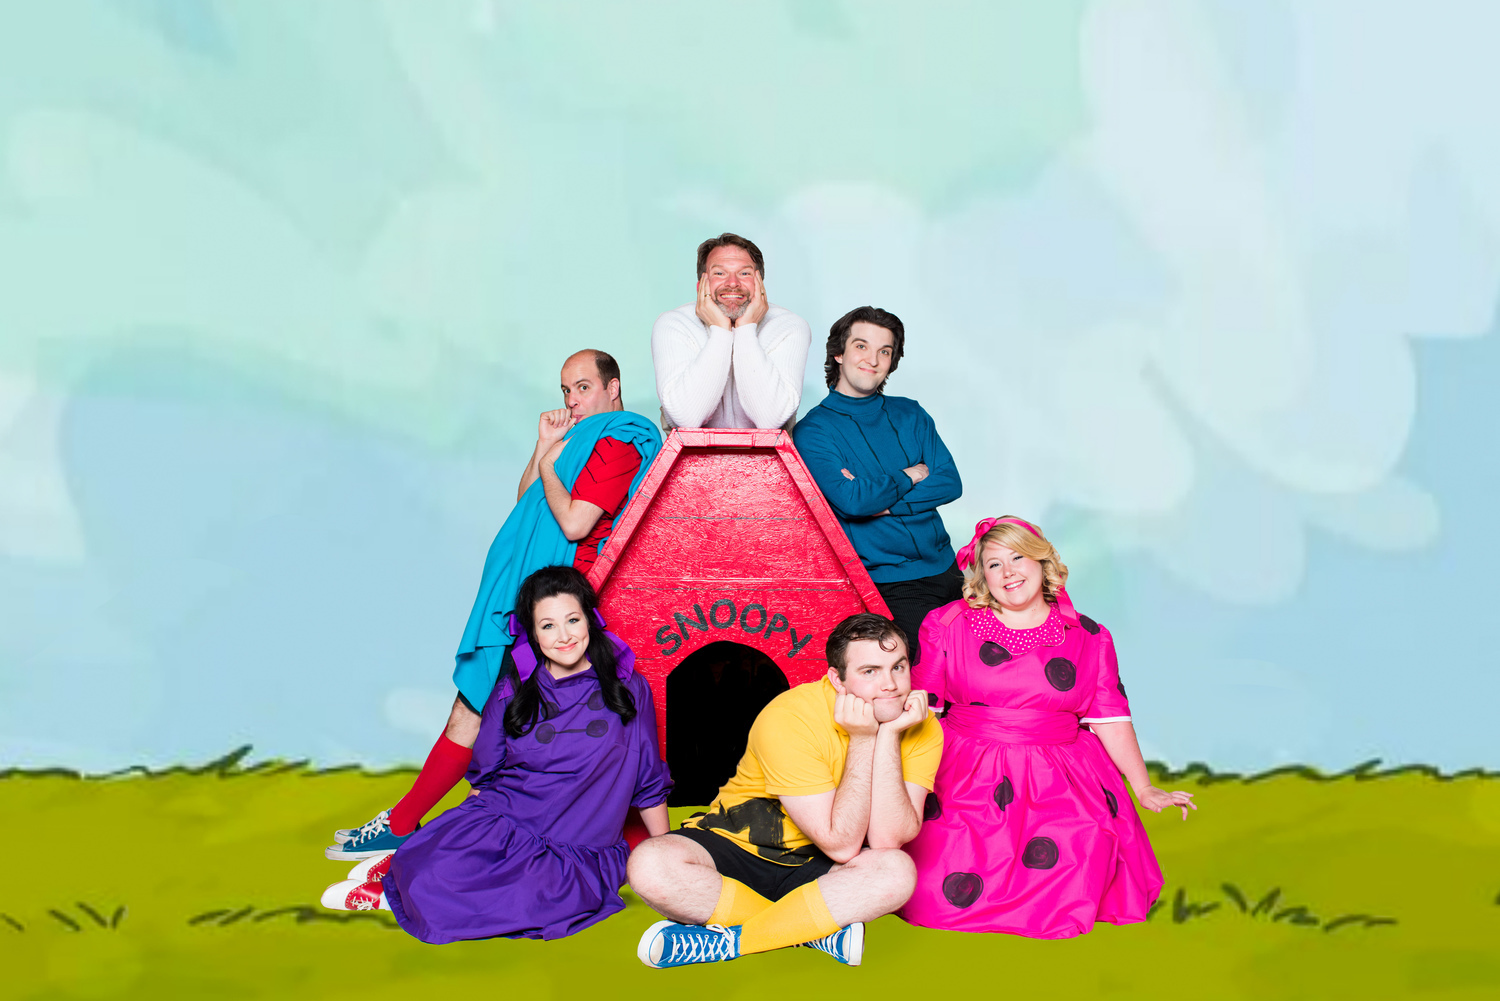 BWW Review: Find Peanuts and a New Philosophy in CenterPoint Legacy's YOU'RE A GOOD MAN, CHARLIE BROWN